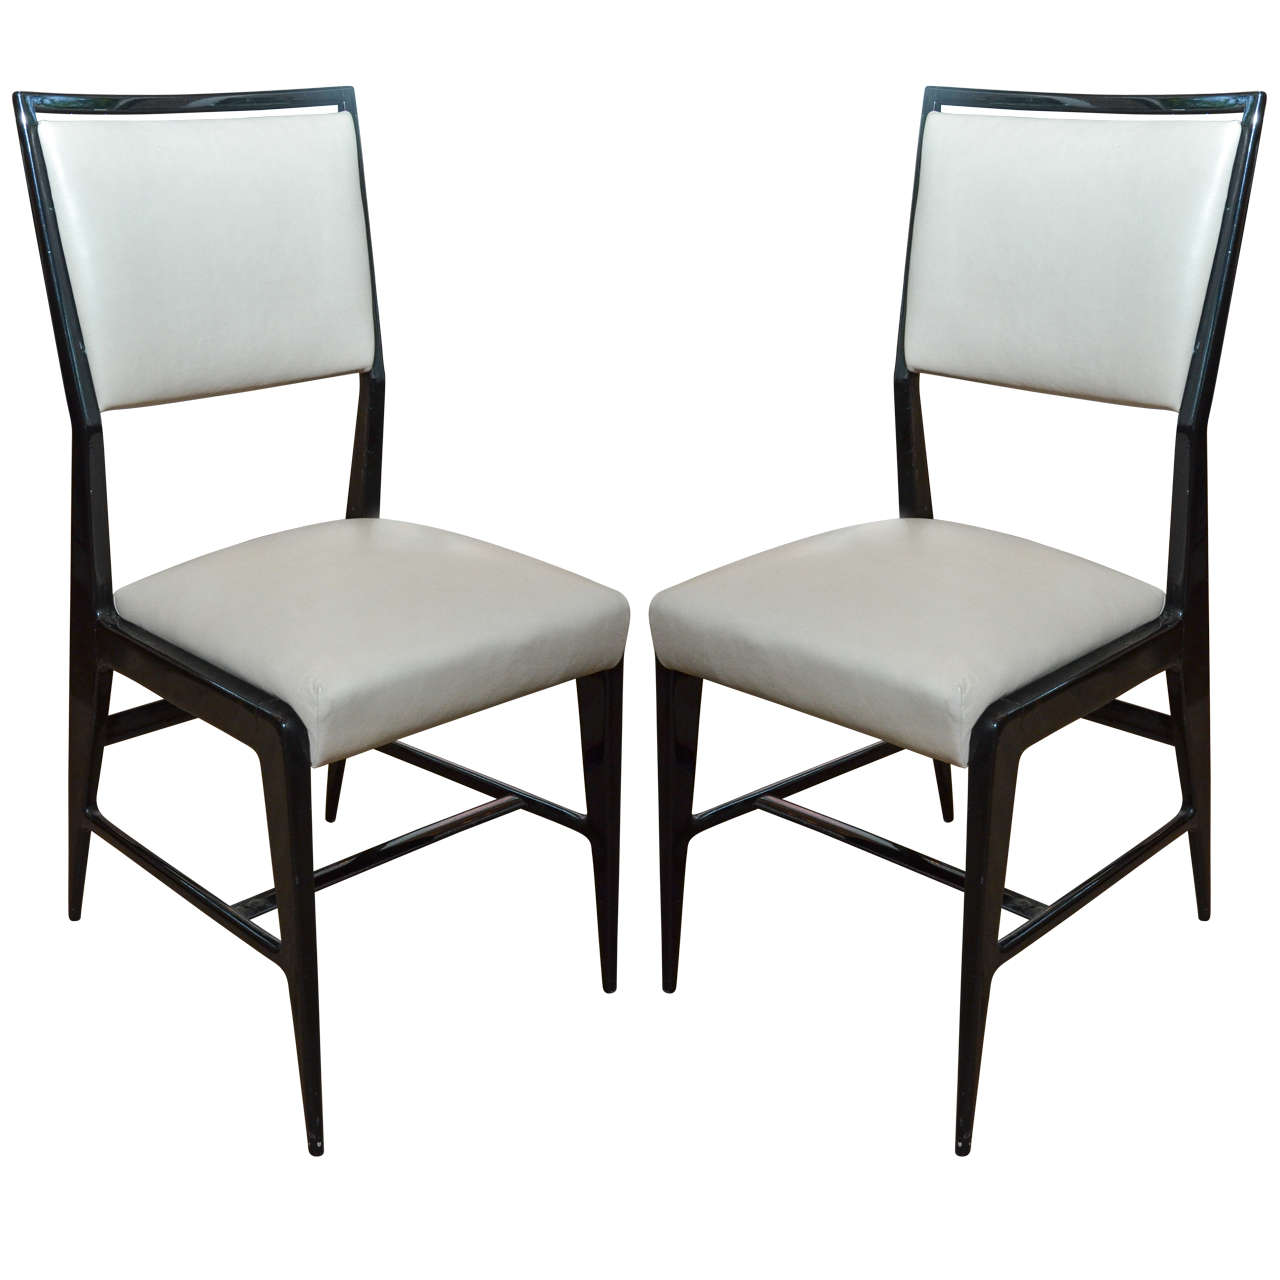 Pair of Occasional Chairs Attributed to Gio Ponti For Sale